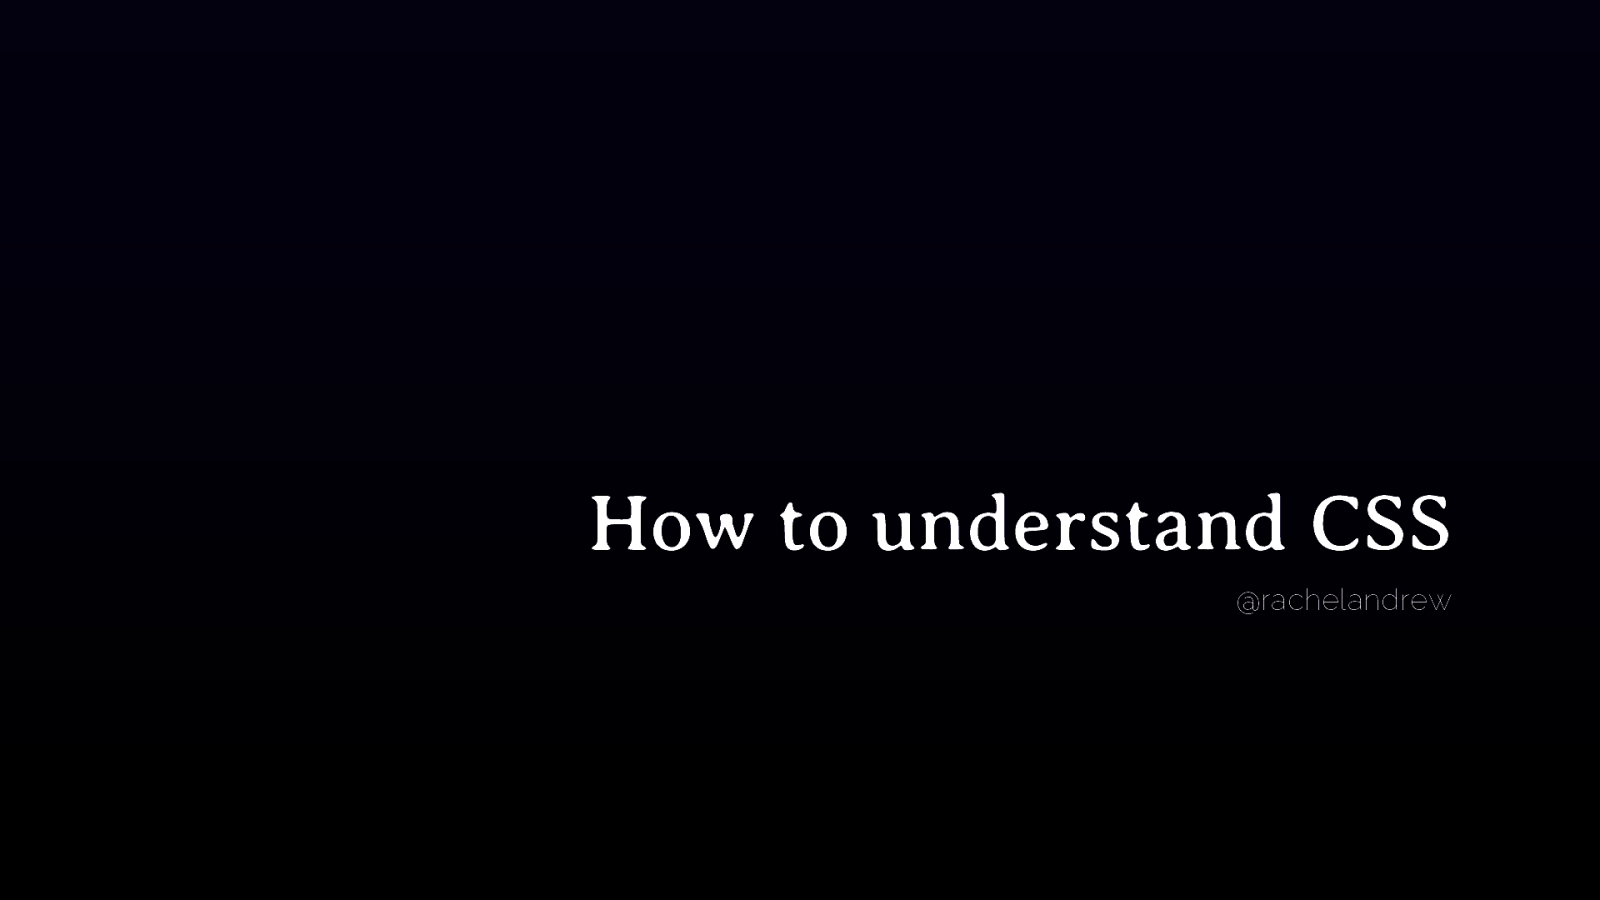 How to understand CSS